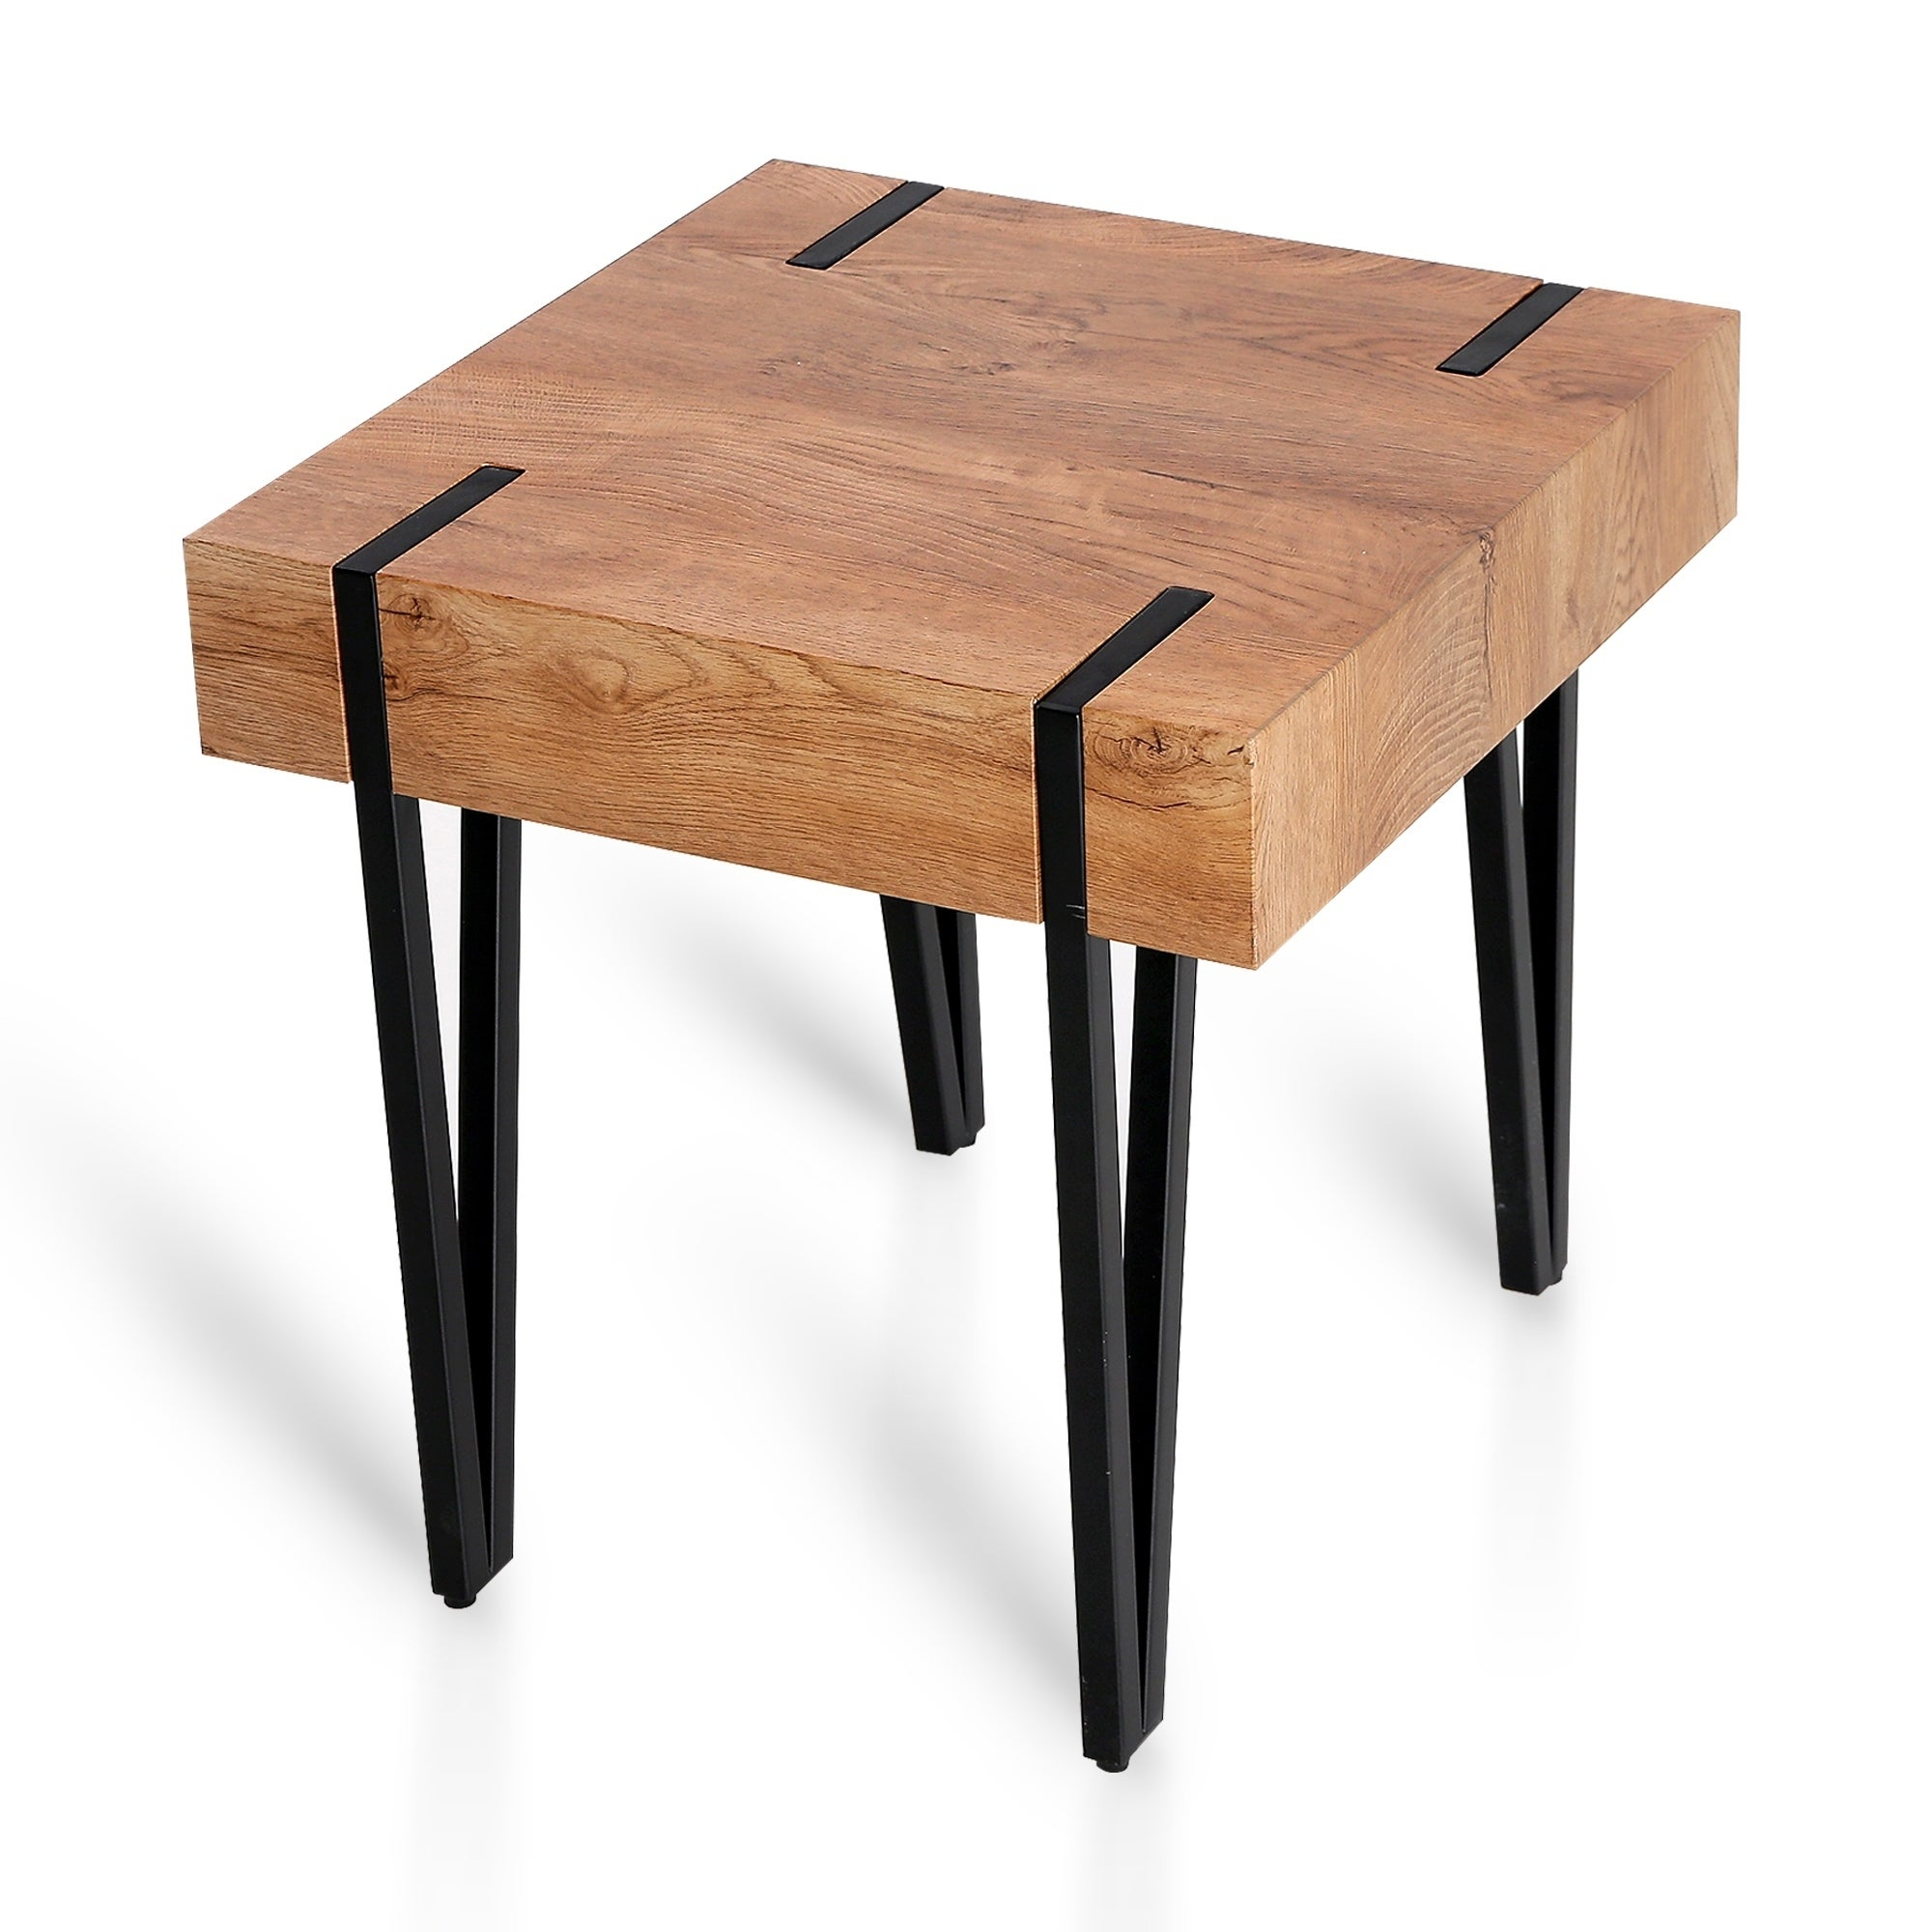 Modern End Tables Side Table Night Stand For Living Room Bedroom